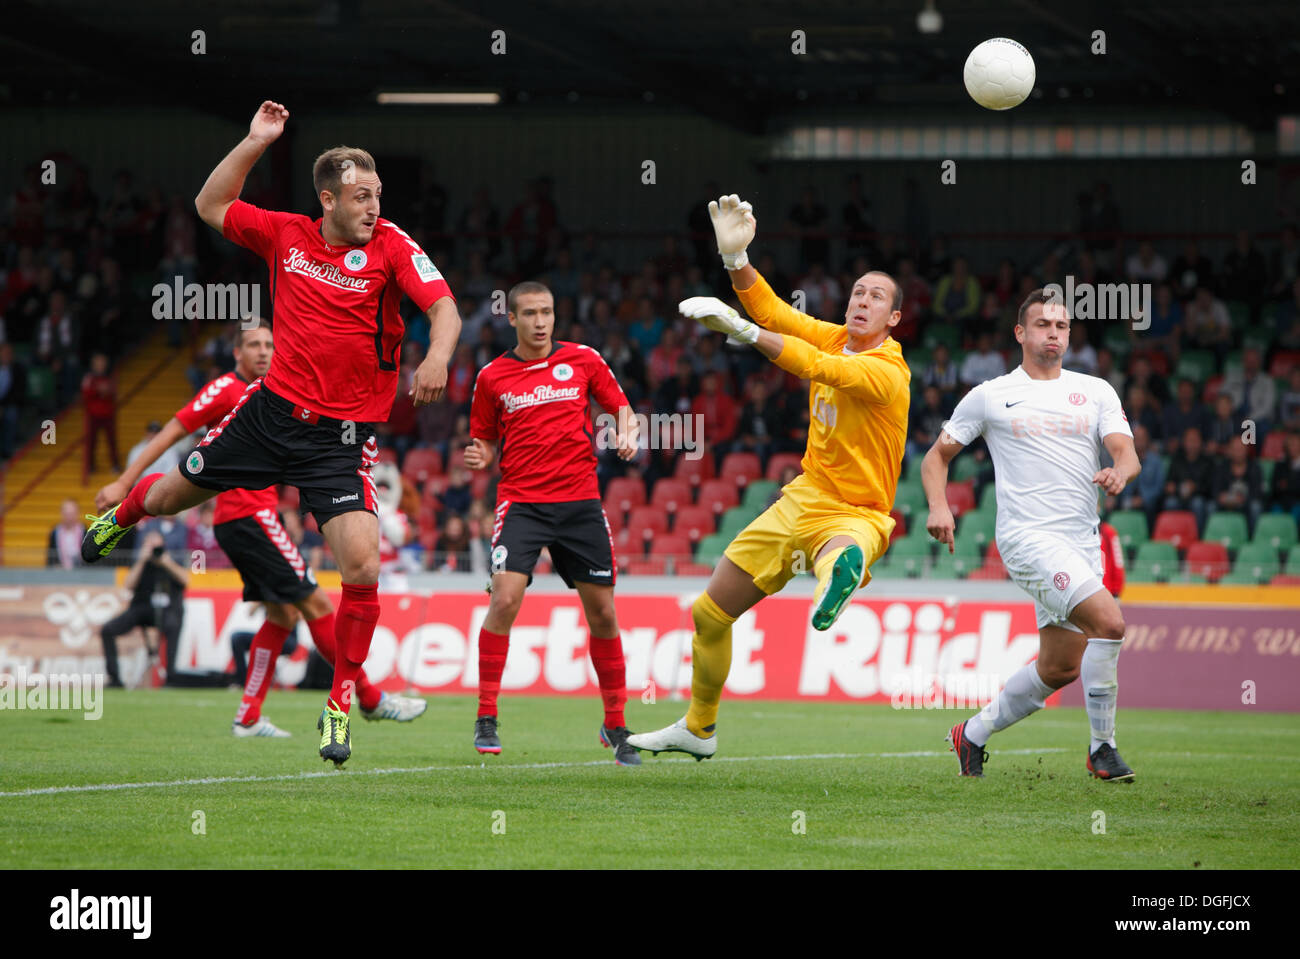 sports, football, Regional League West, 2013/2014, Rot Weiss Oberhausen versus Rot Weiss Essen 2:0, Stadium Niederrhein in Oberhausen, scene of the match immitent before the 1:0 goal per penalty for handball caused by Langlitz and converted by Bauder, f.l - Stock Image